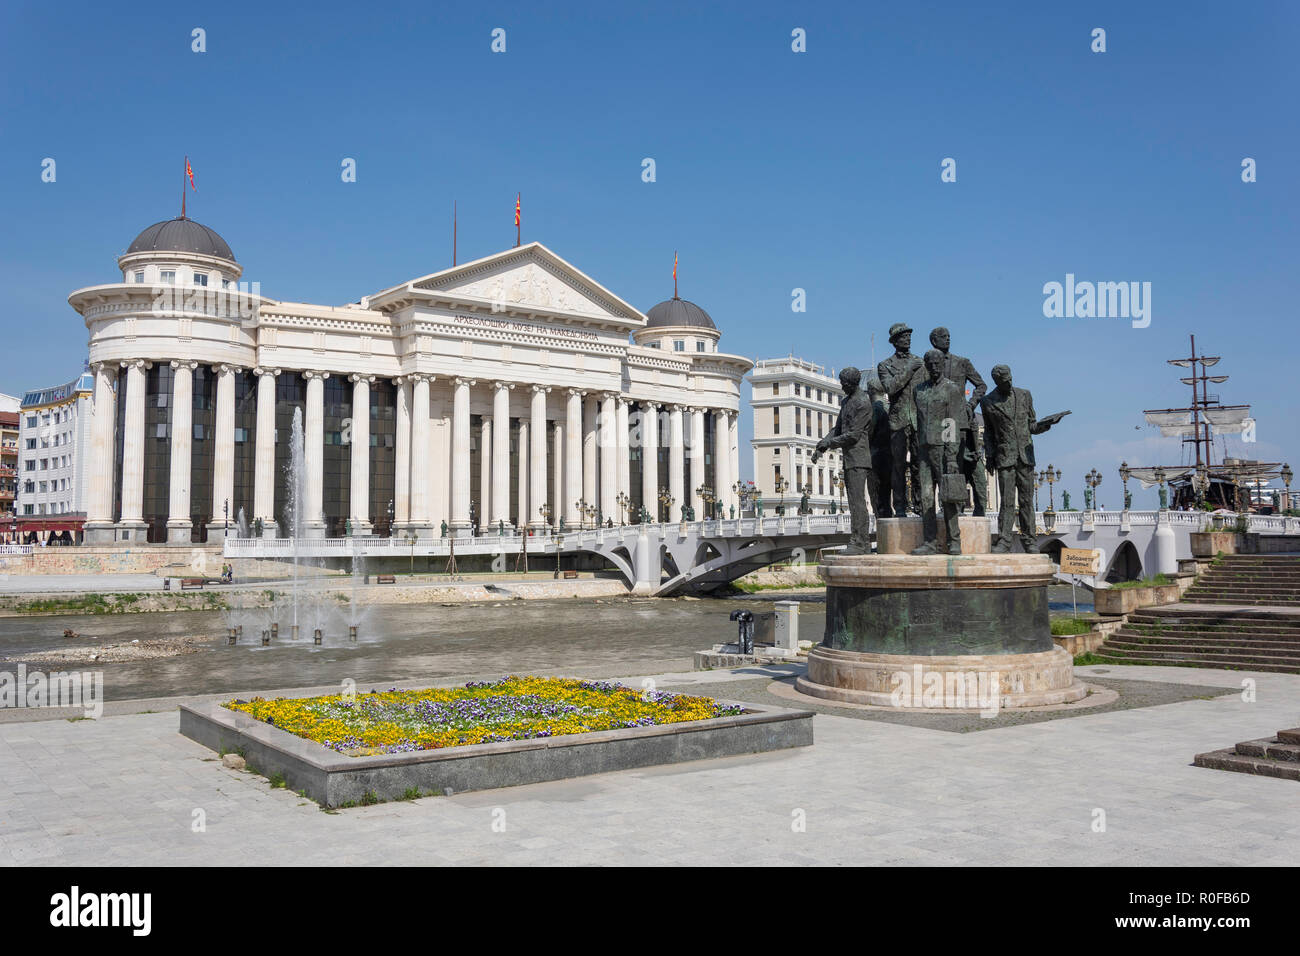 The Museum of Archaeology across River Vardar, Skopje, Skopje Region, Republic of Macedonia - Stock Image